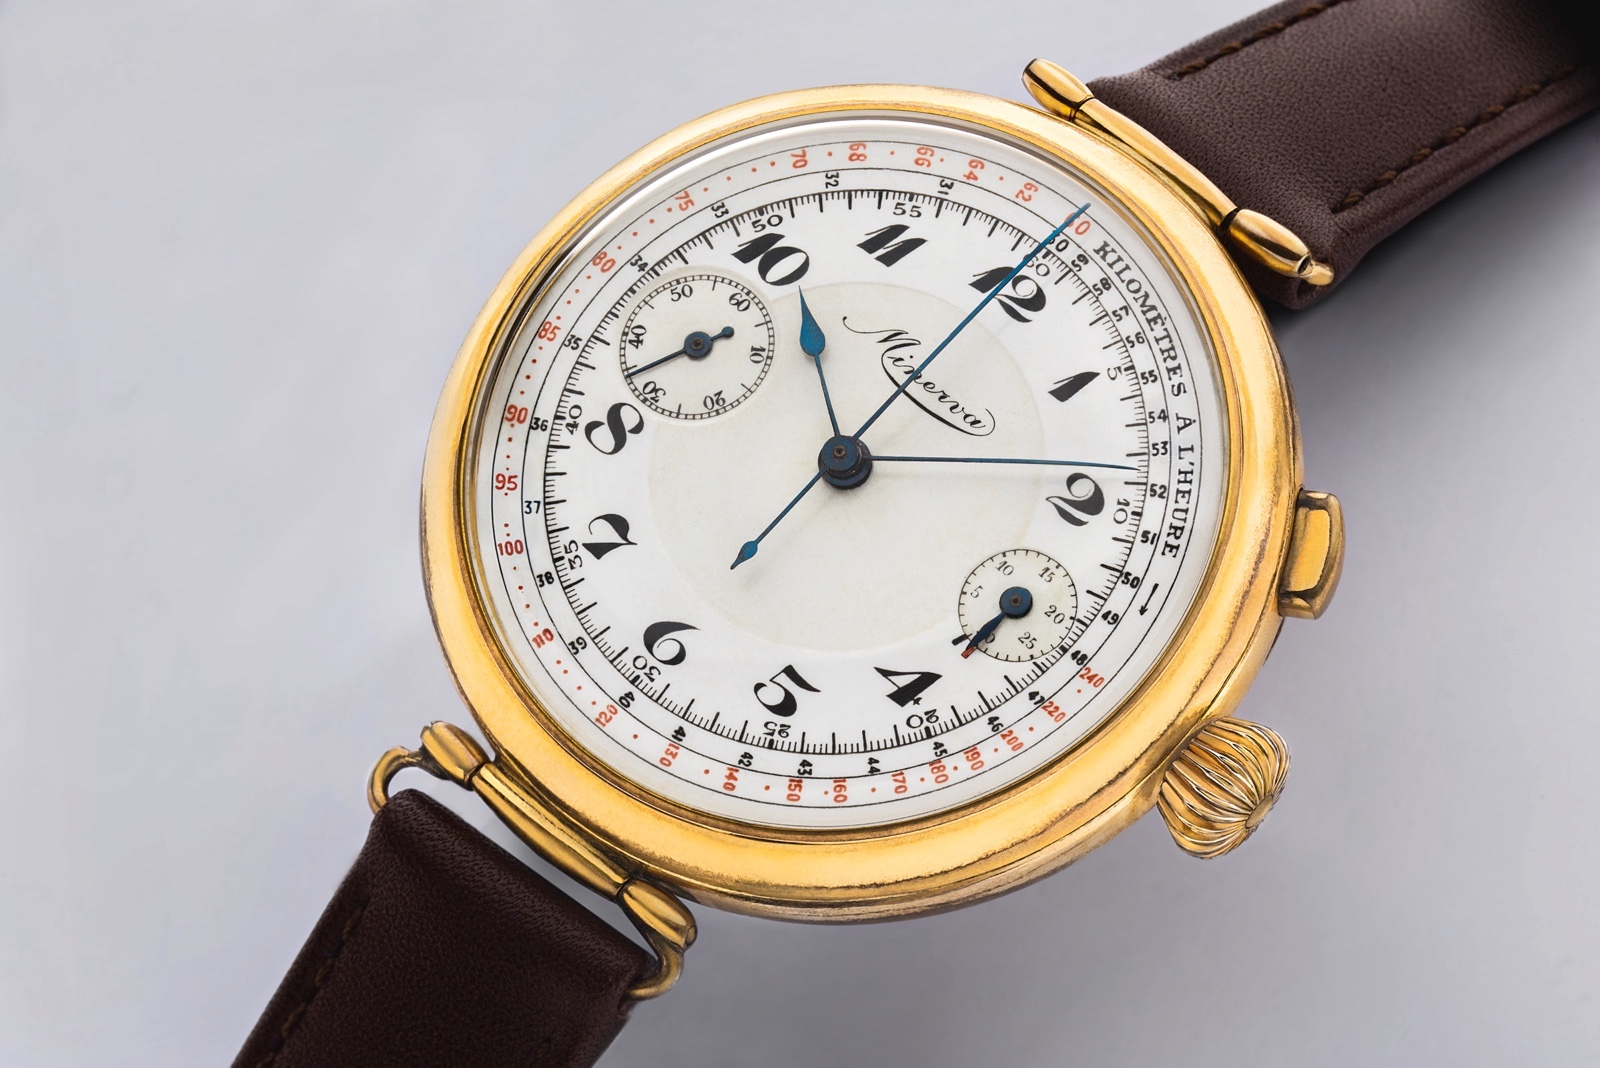 Montblanc SIHH 2018 Collection Star Legacy